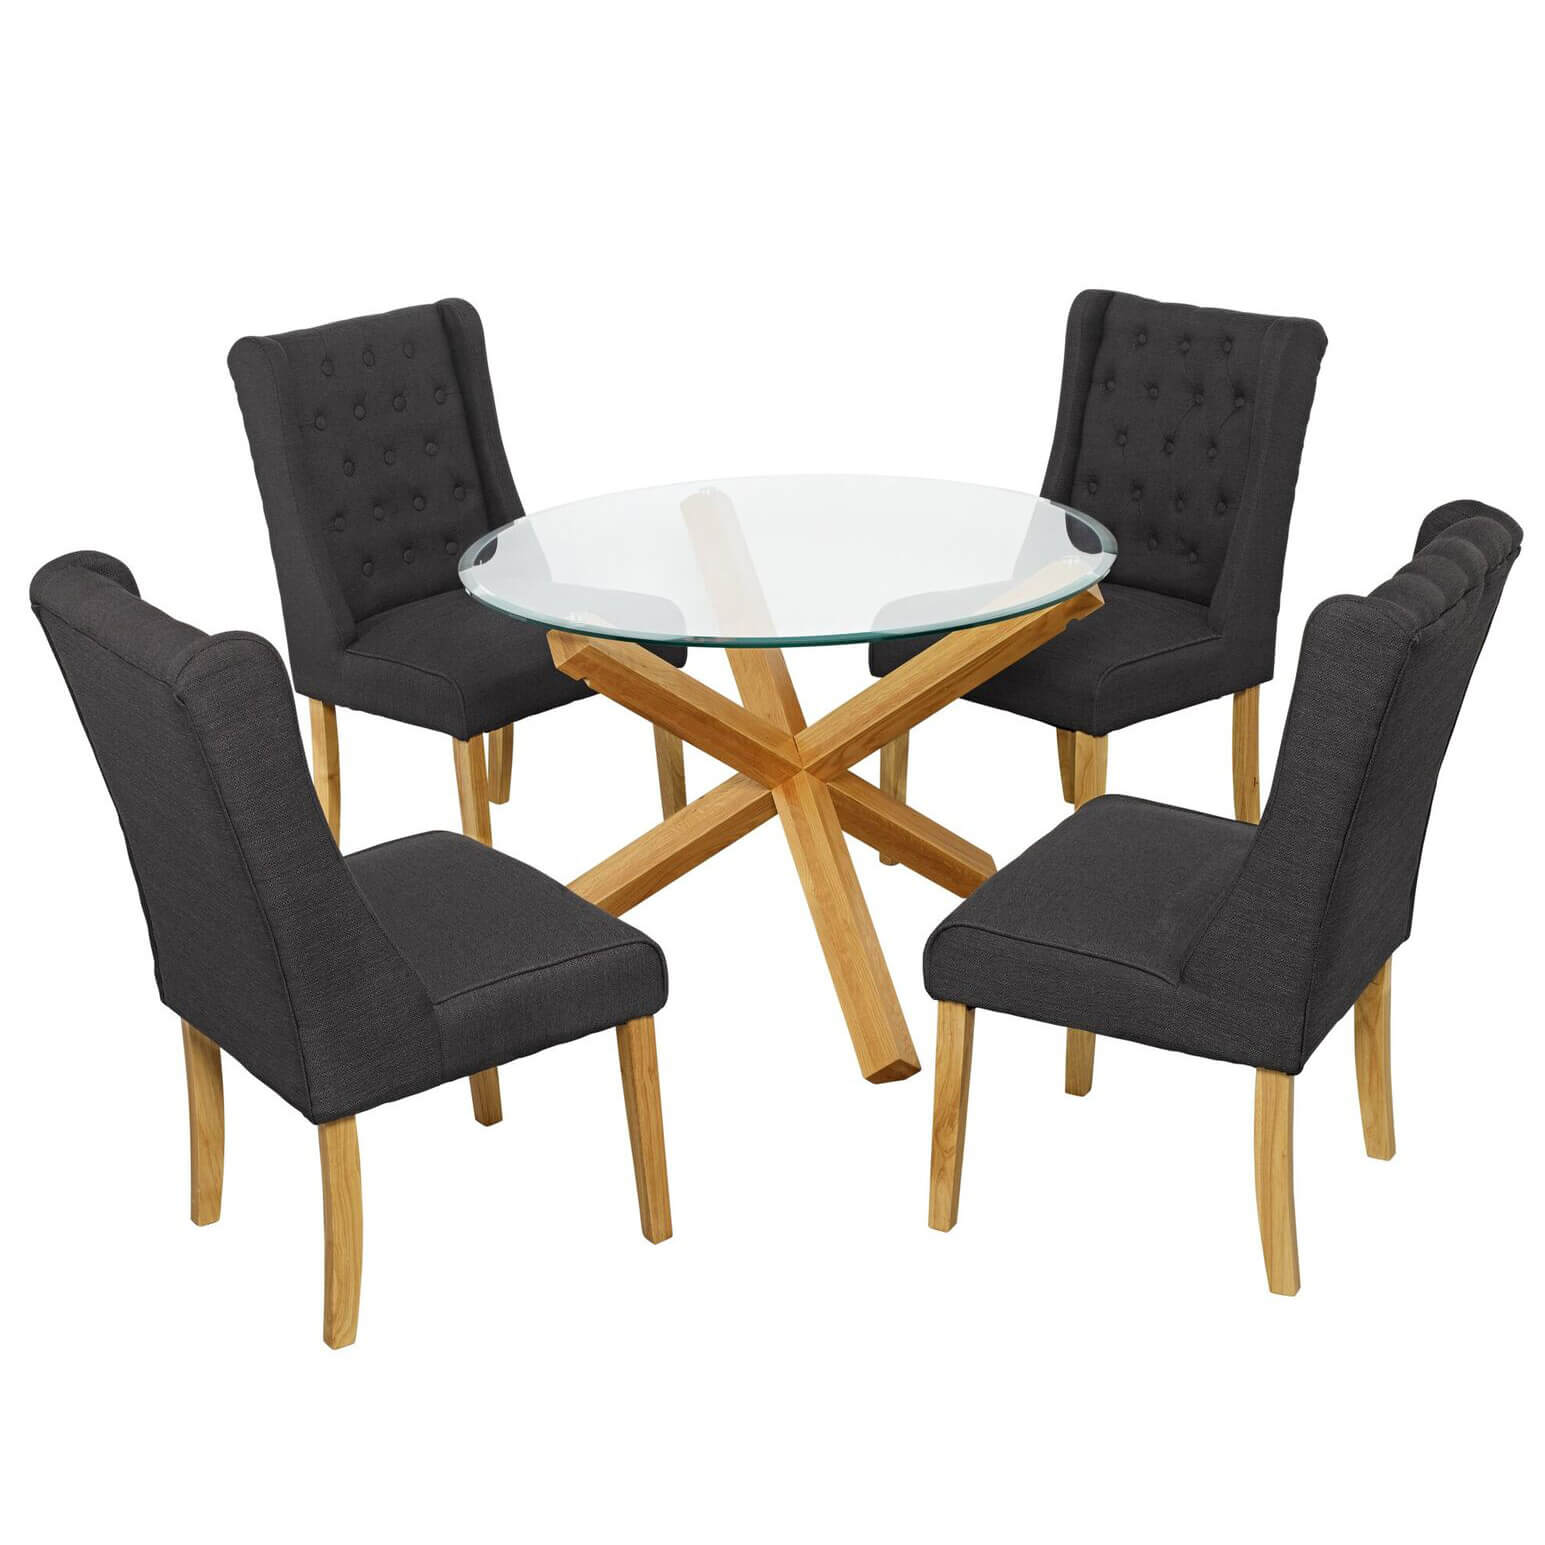 4 chair dining table designs big boy chairs uk grange glass and verona fads